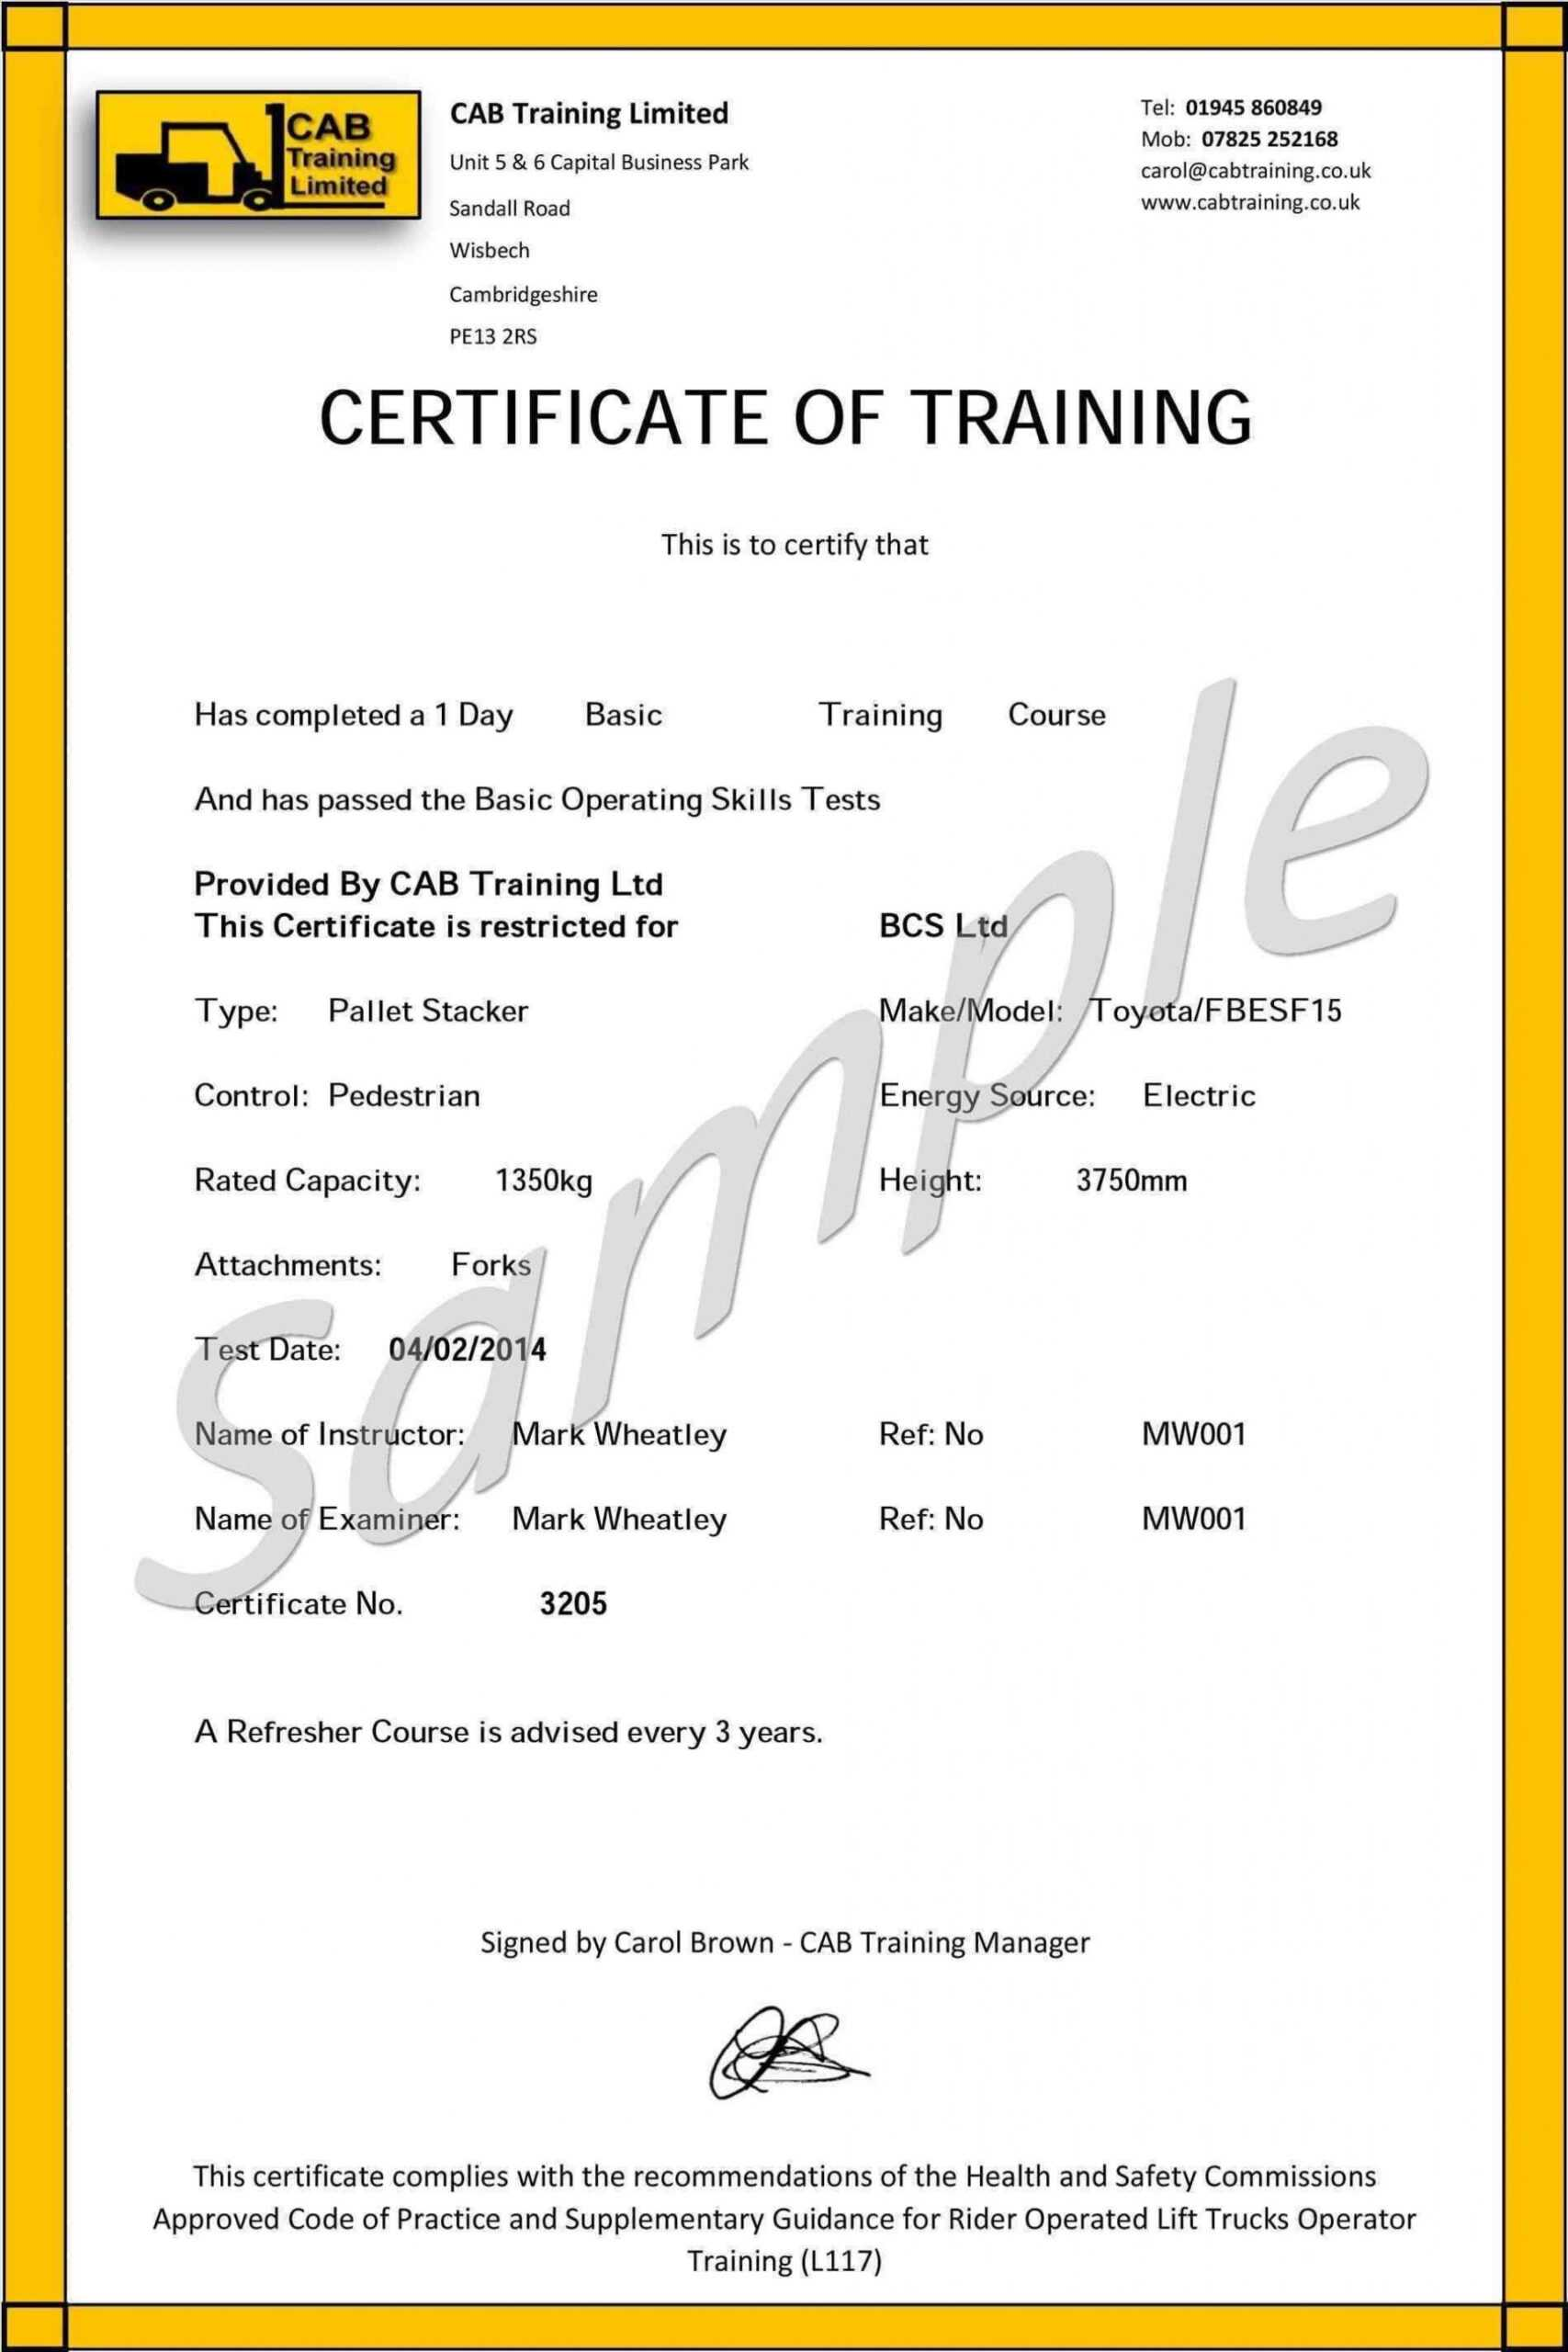 009 Forklift Certification Card Template Free Original Pertaining To Forklift Certification Card Template